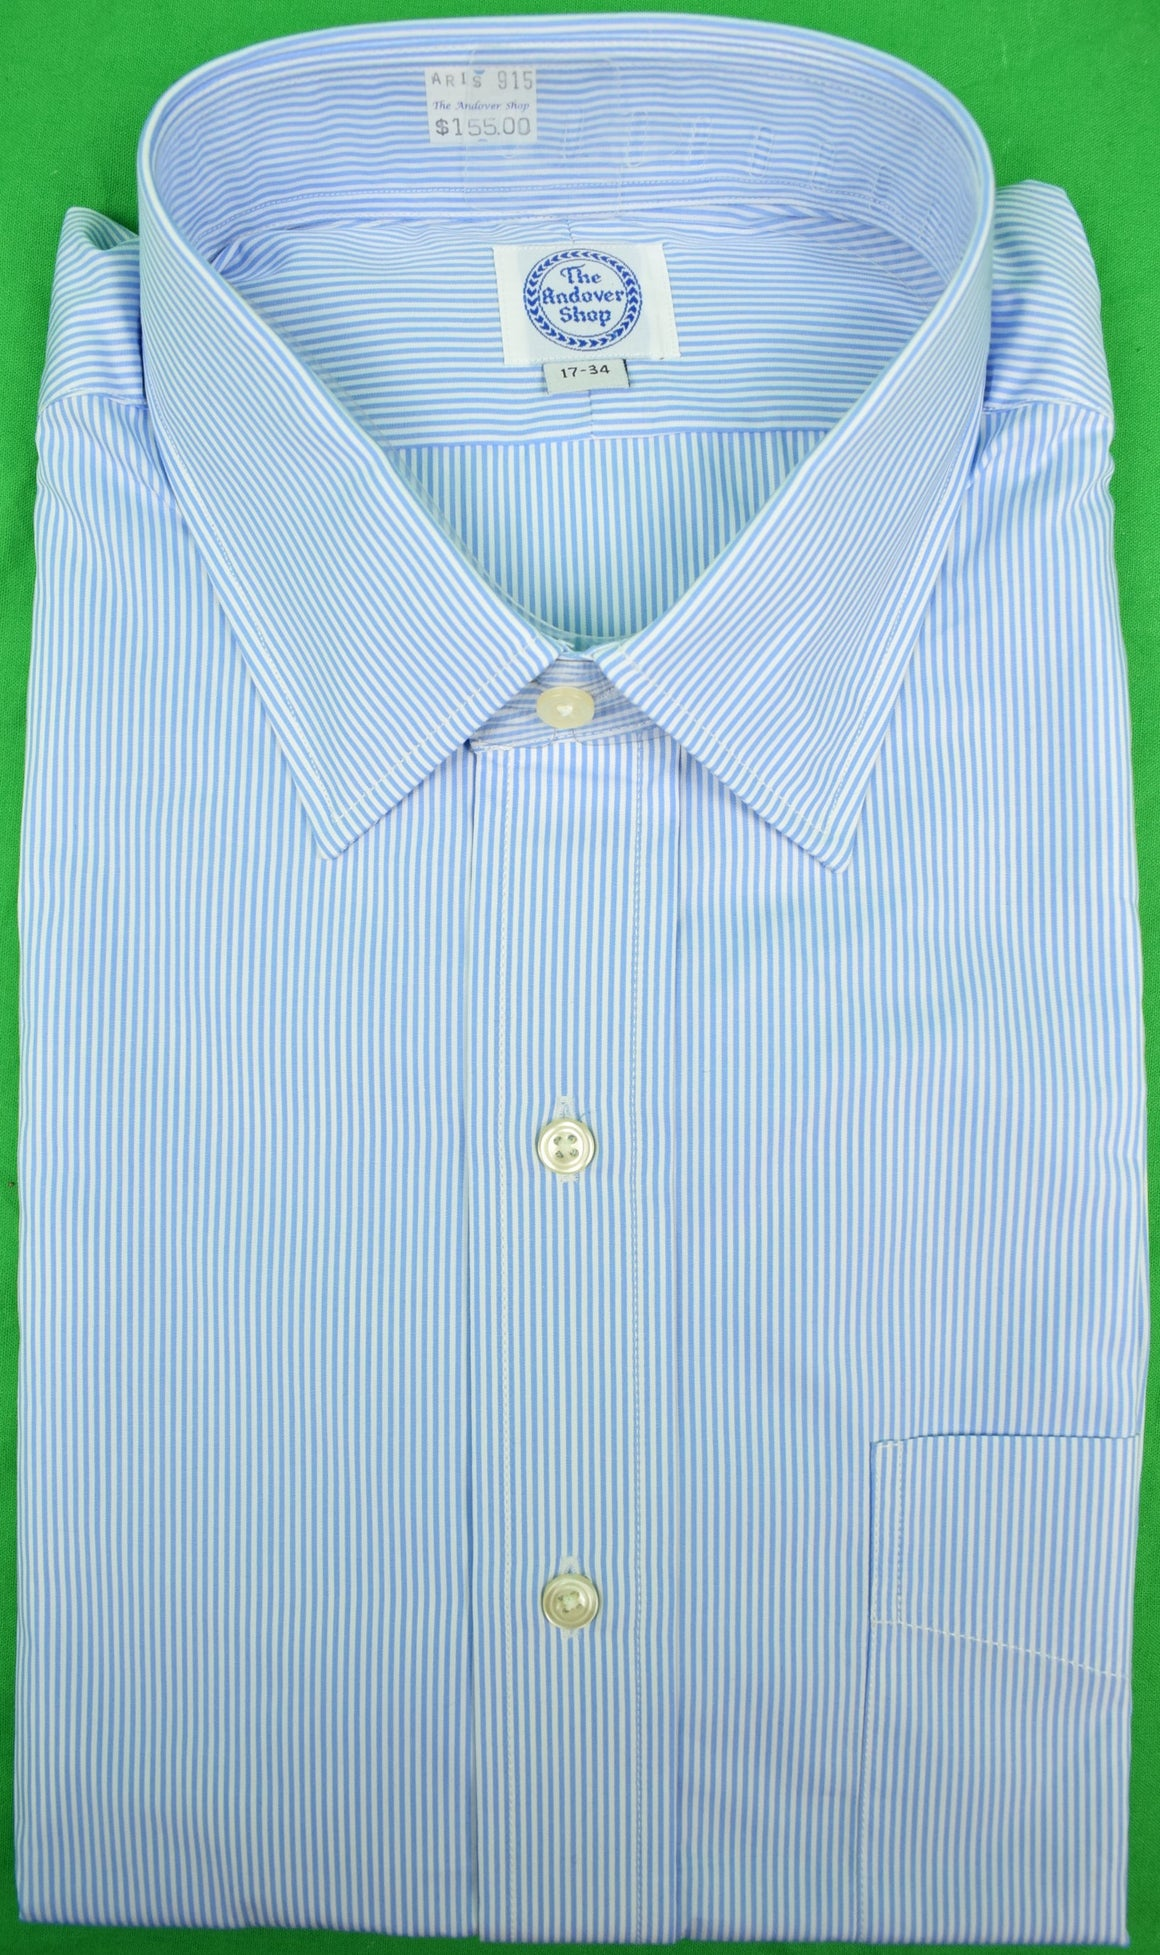 The Andover Shop Blue/ White Hairline Pinstripe Dress Shirt Sz: 17-34 (New w/ Tag!)